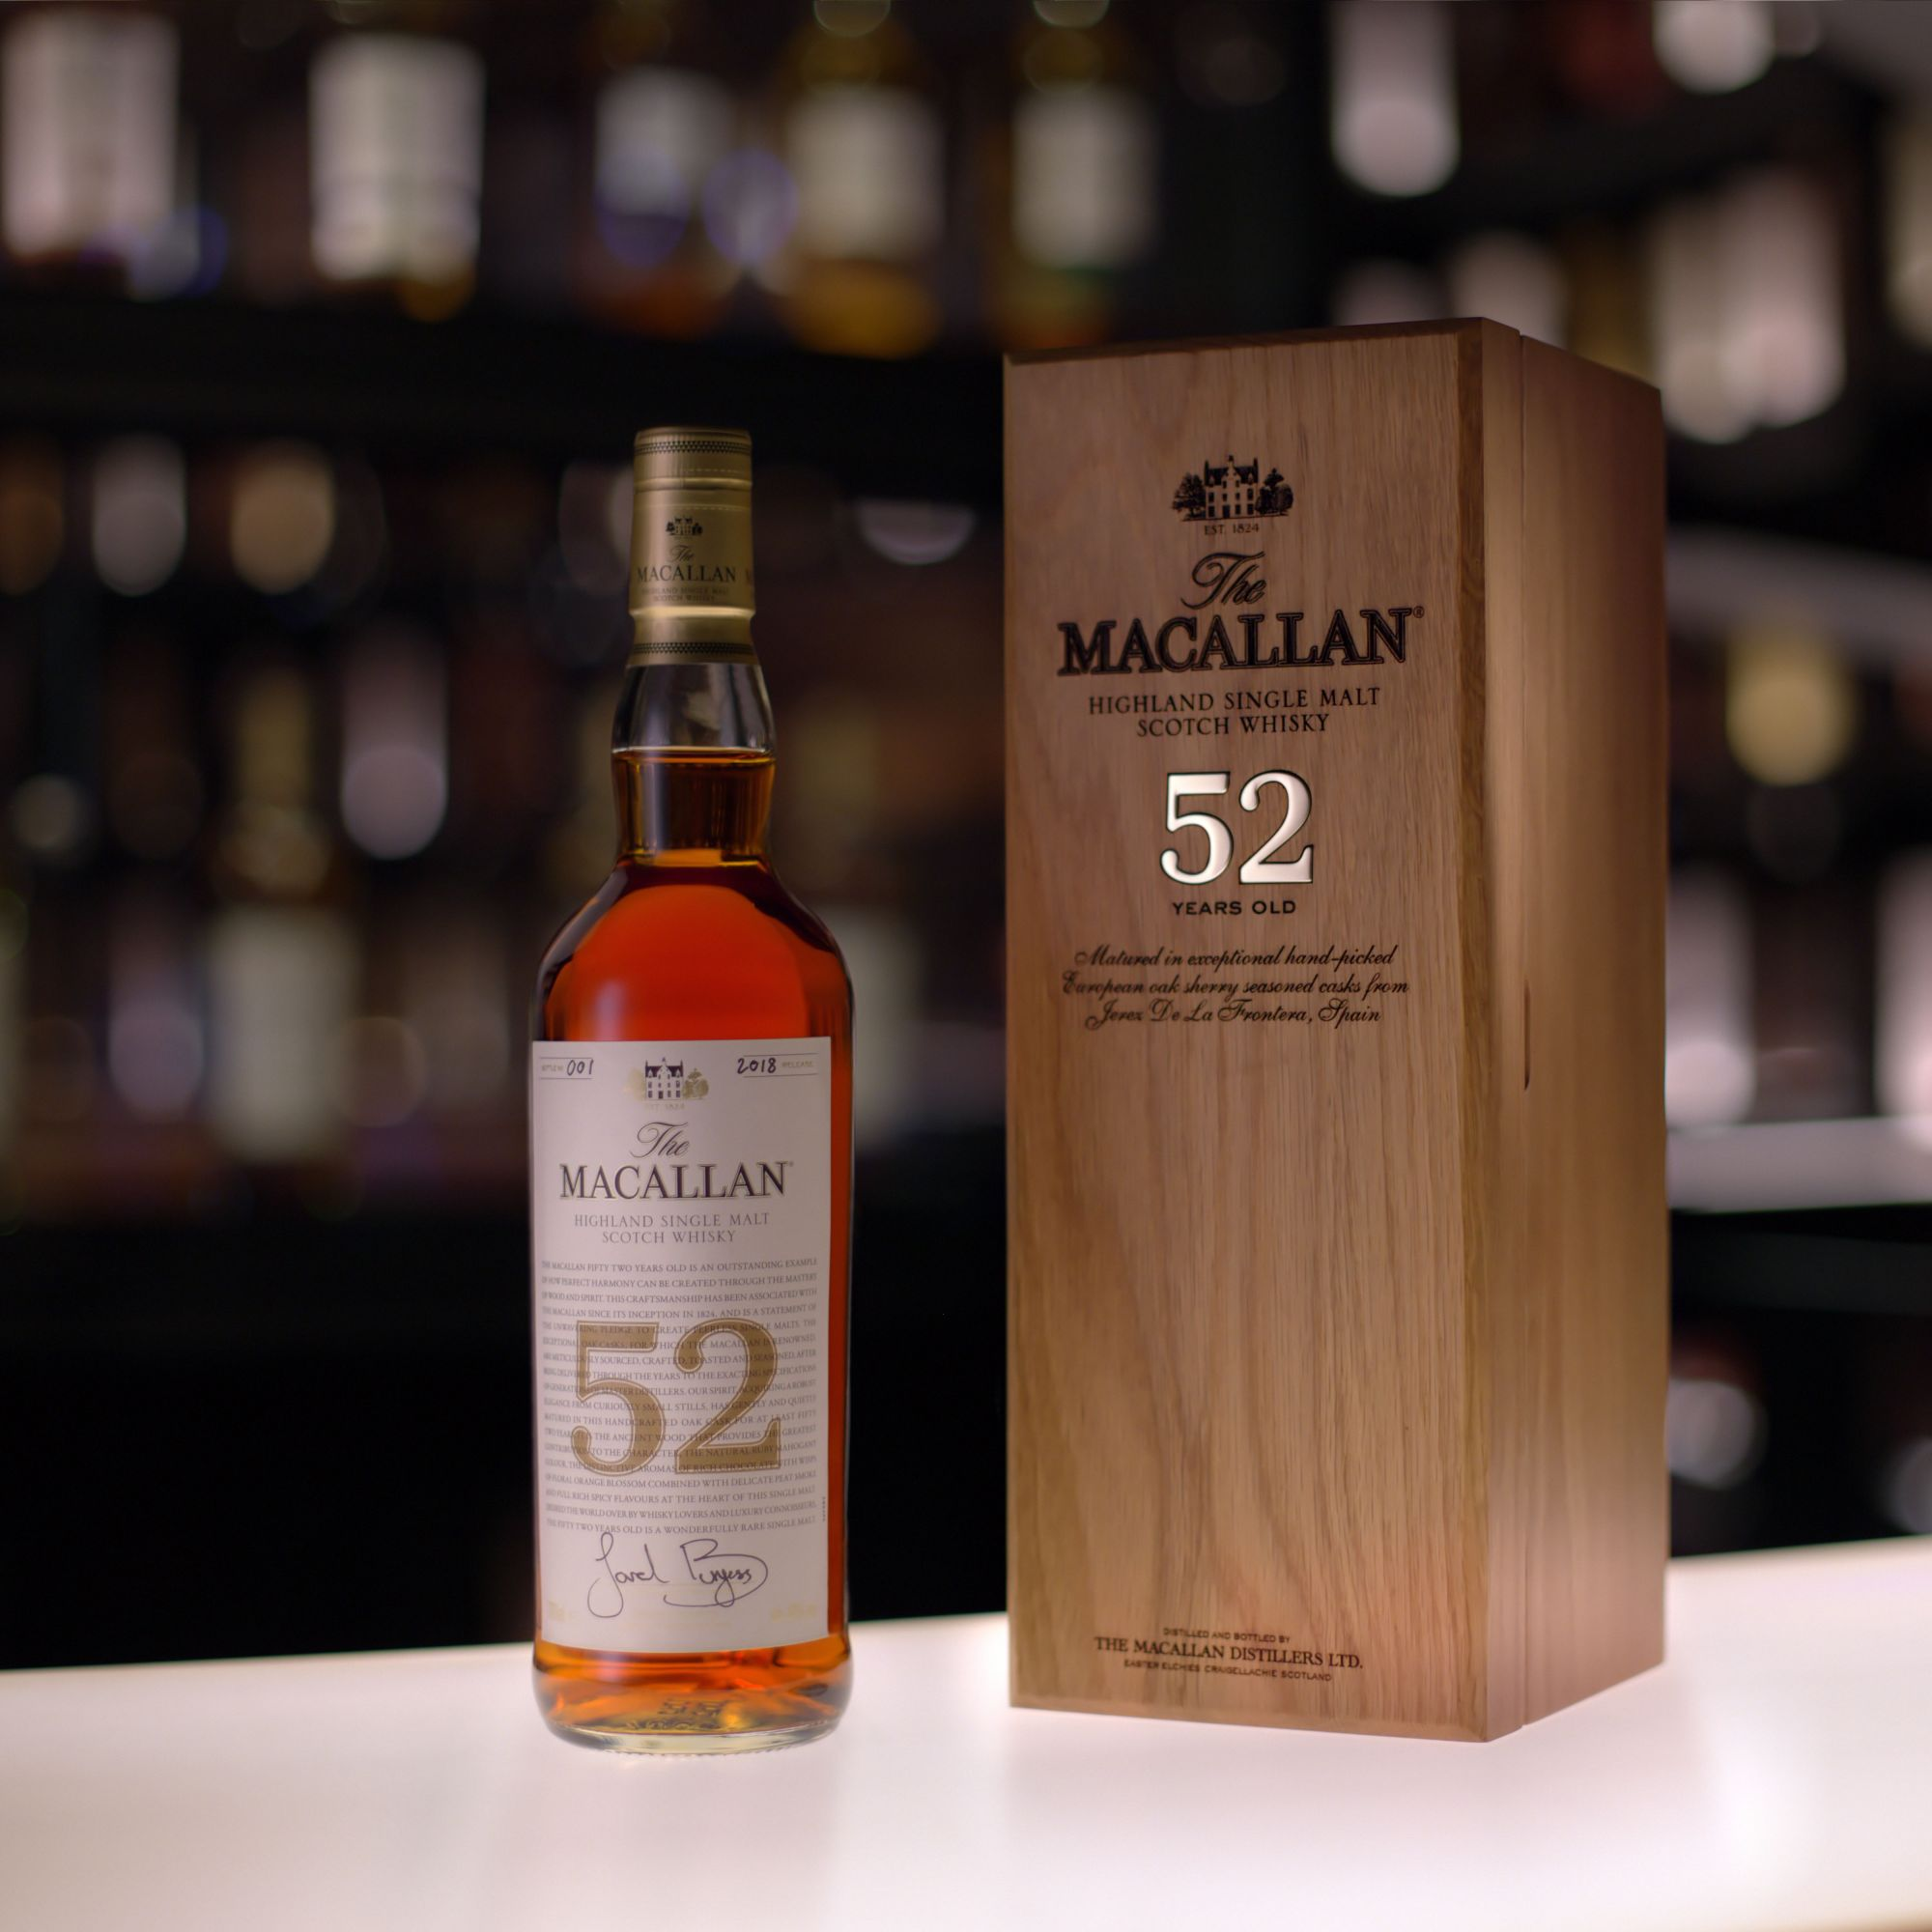 The Macallan Releases 52-Year-Old Whisky